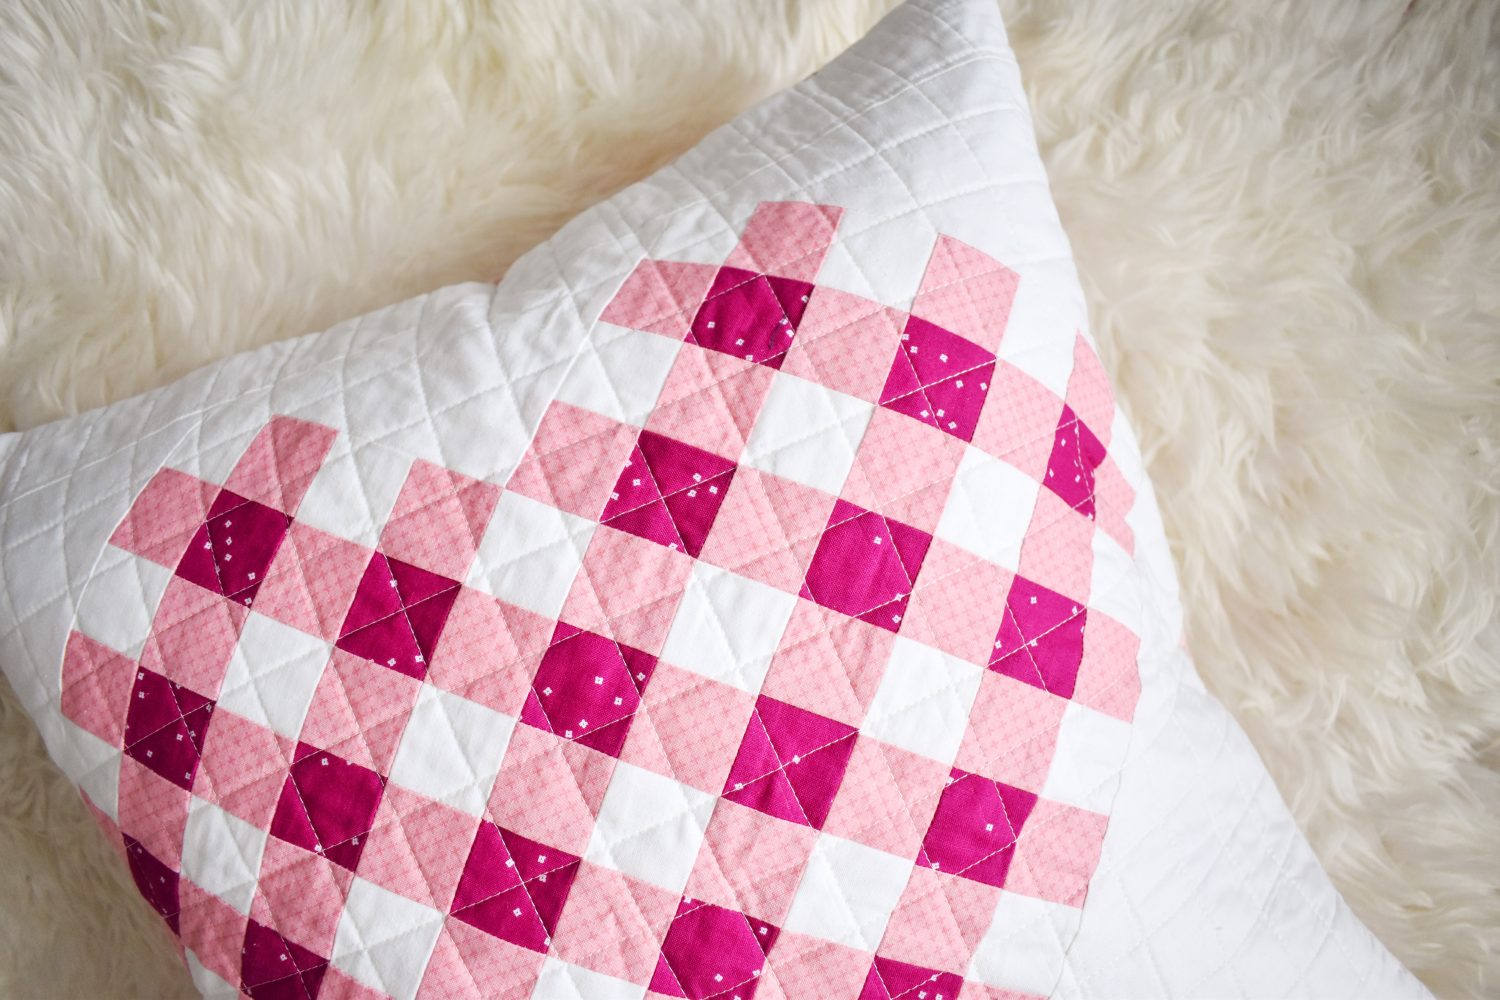 Woven Hearts pillow made with Riley Blake Designs basics